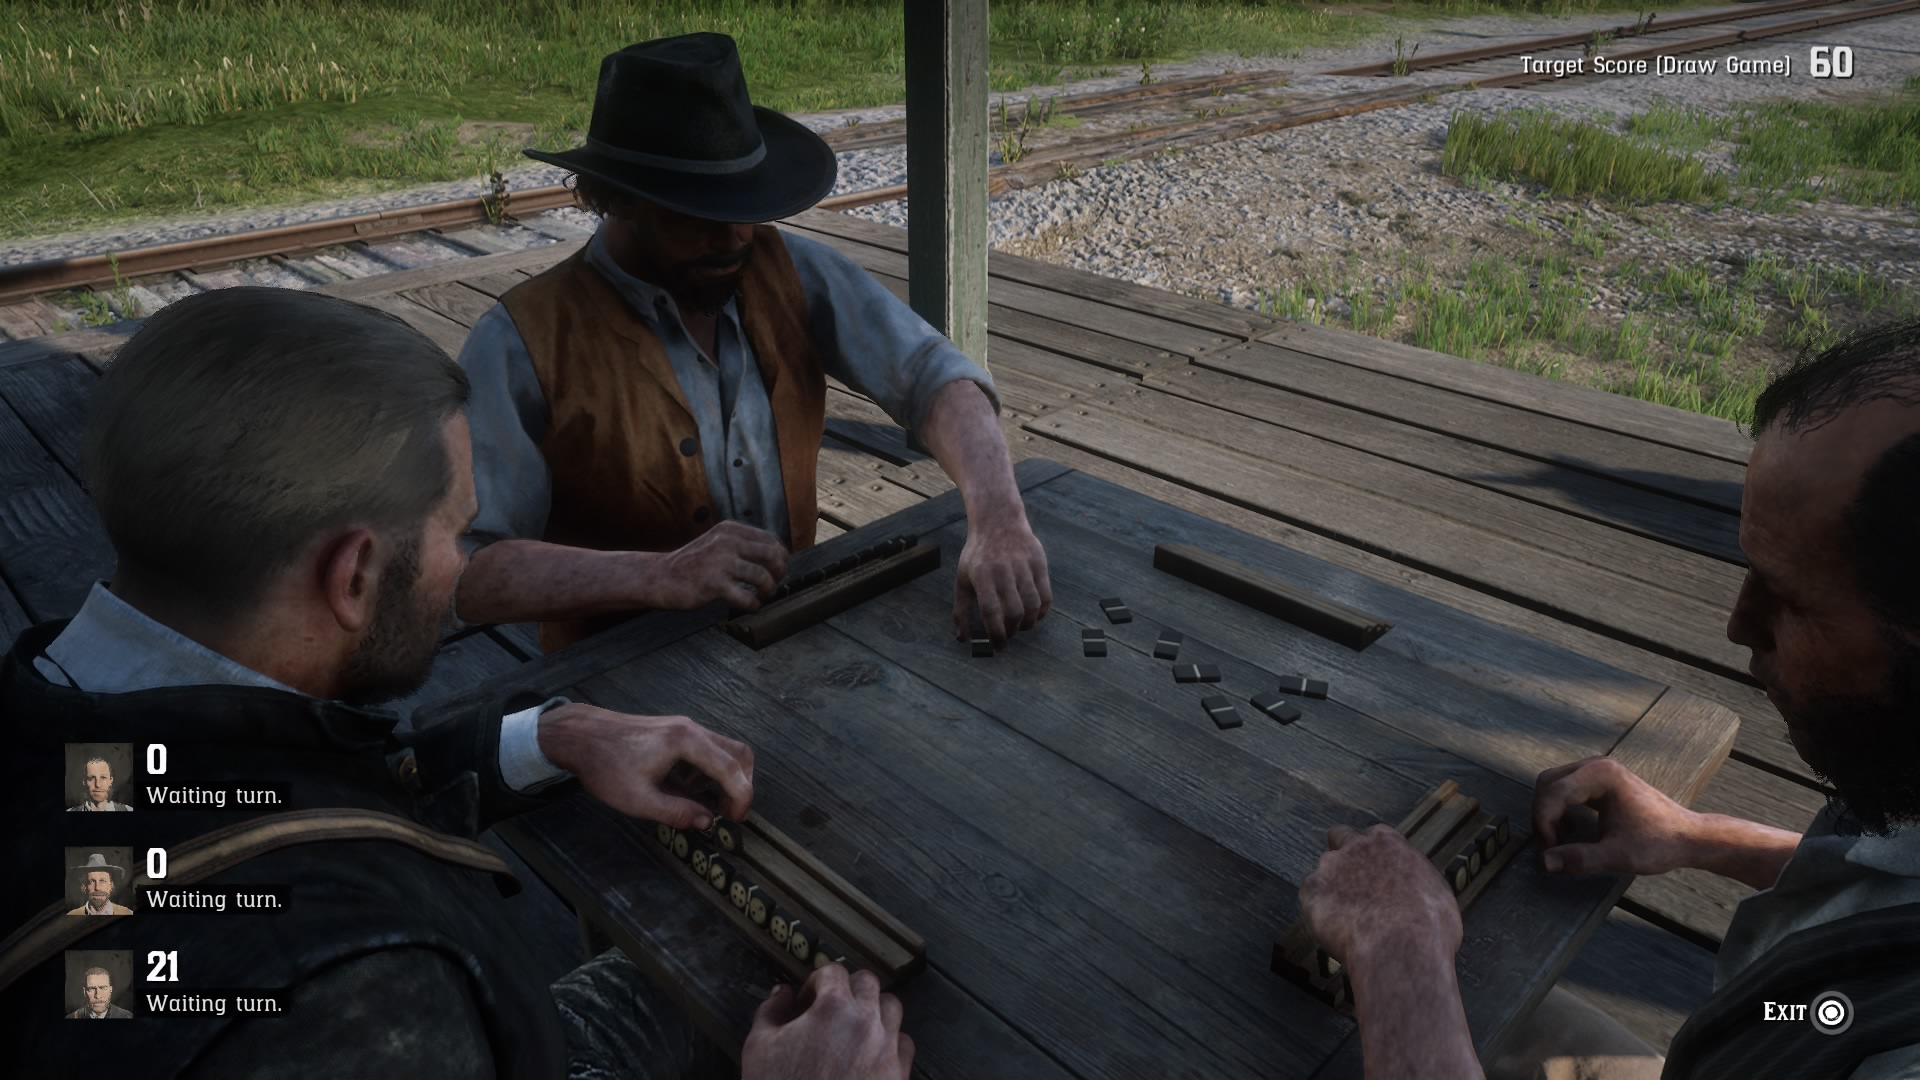 Red Dead Redemption 2 mini-game guide: how to win money at